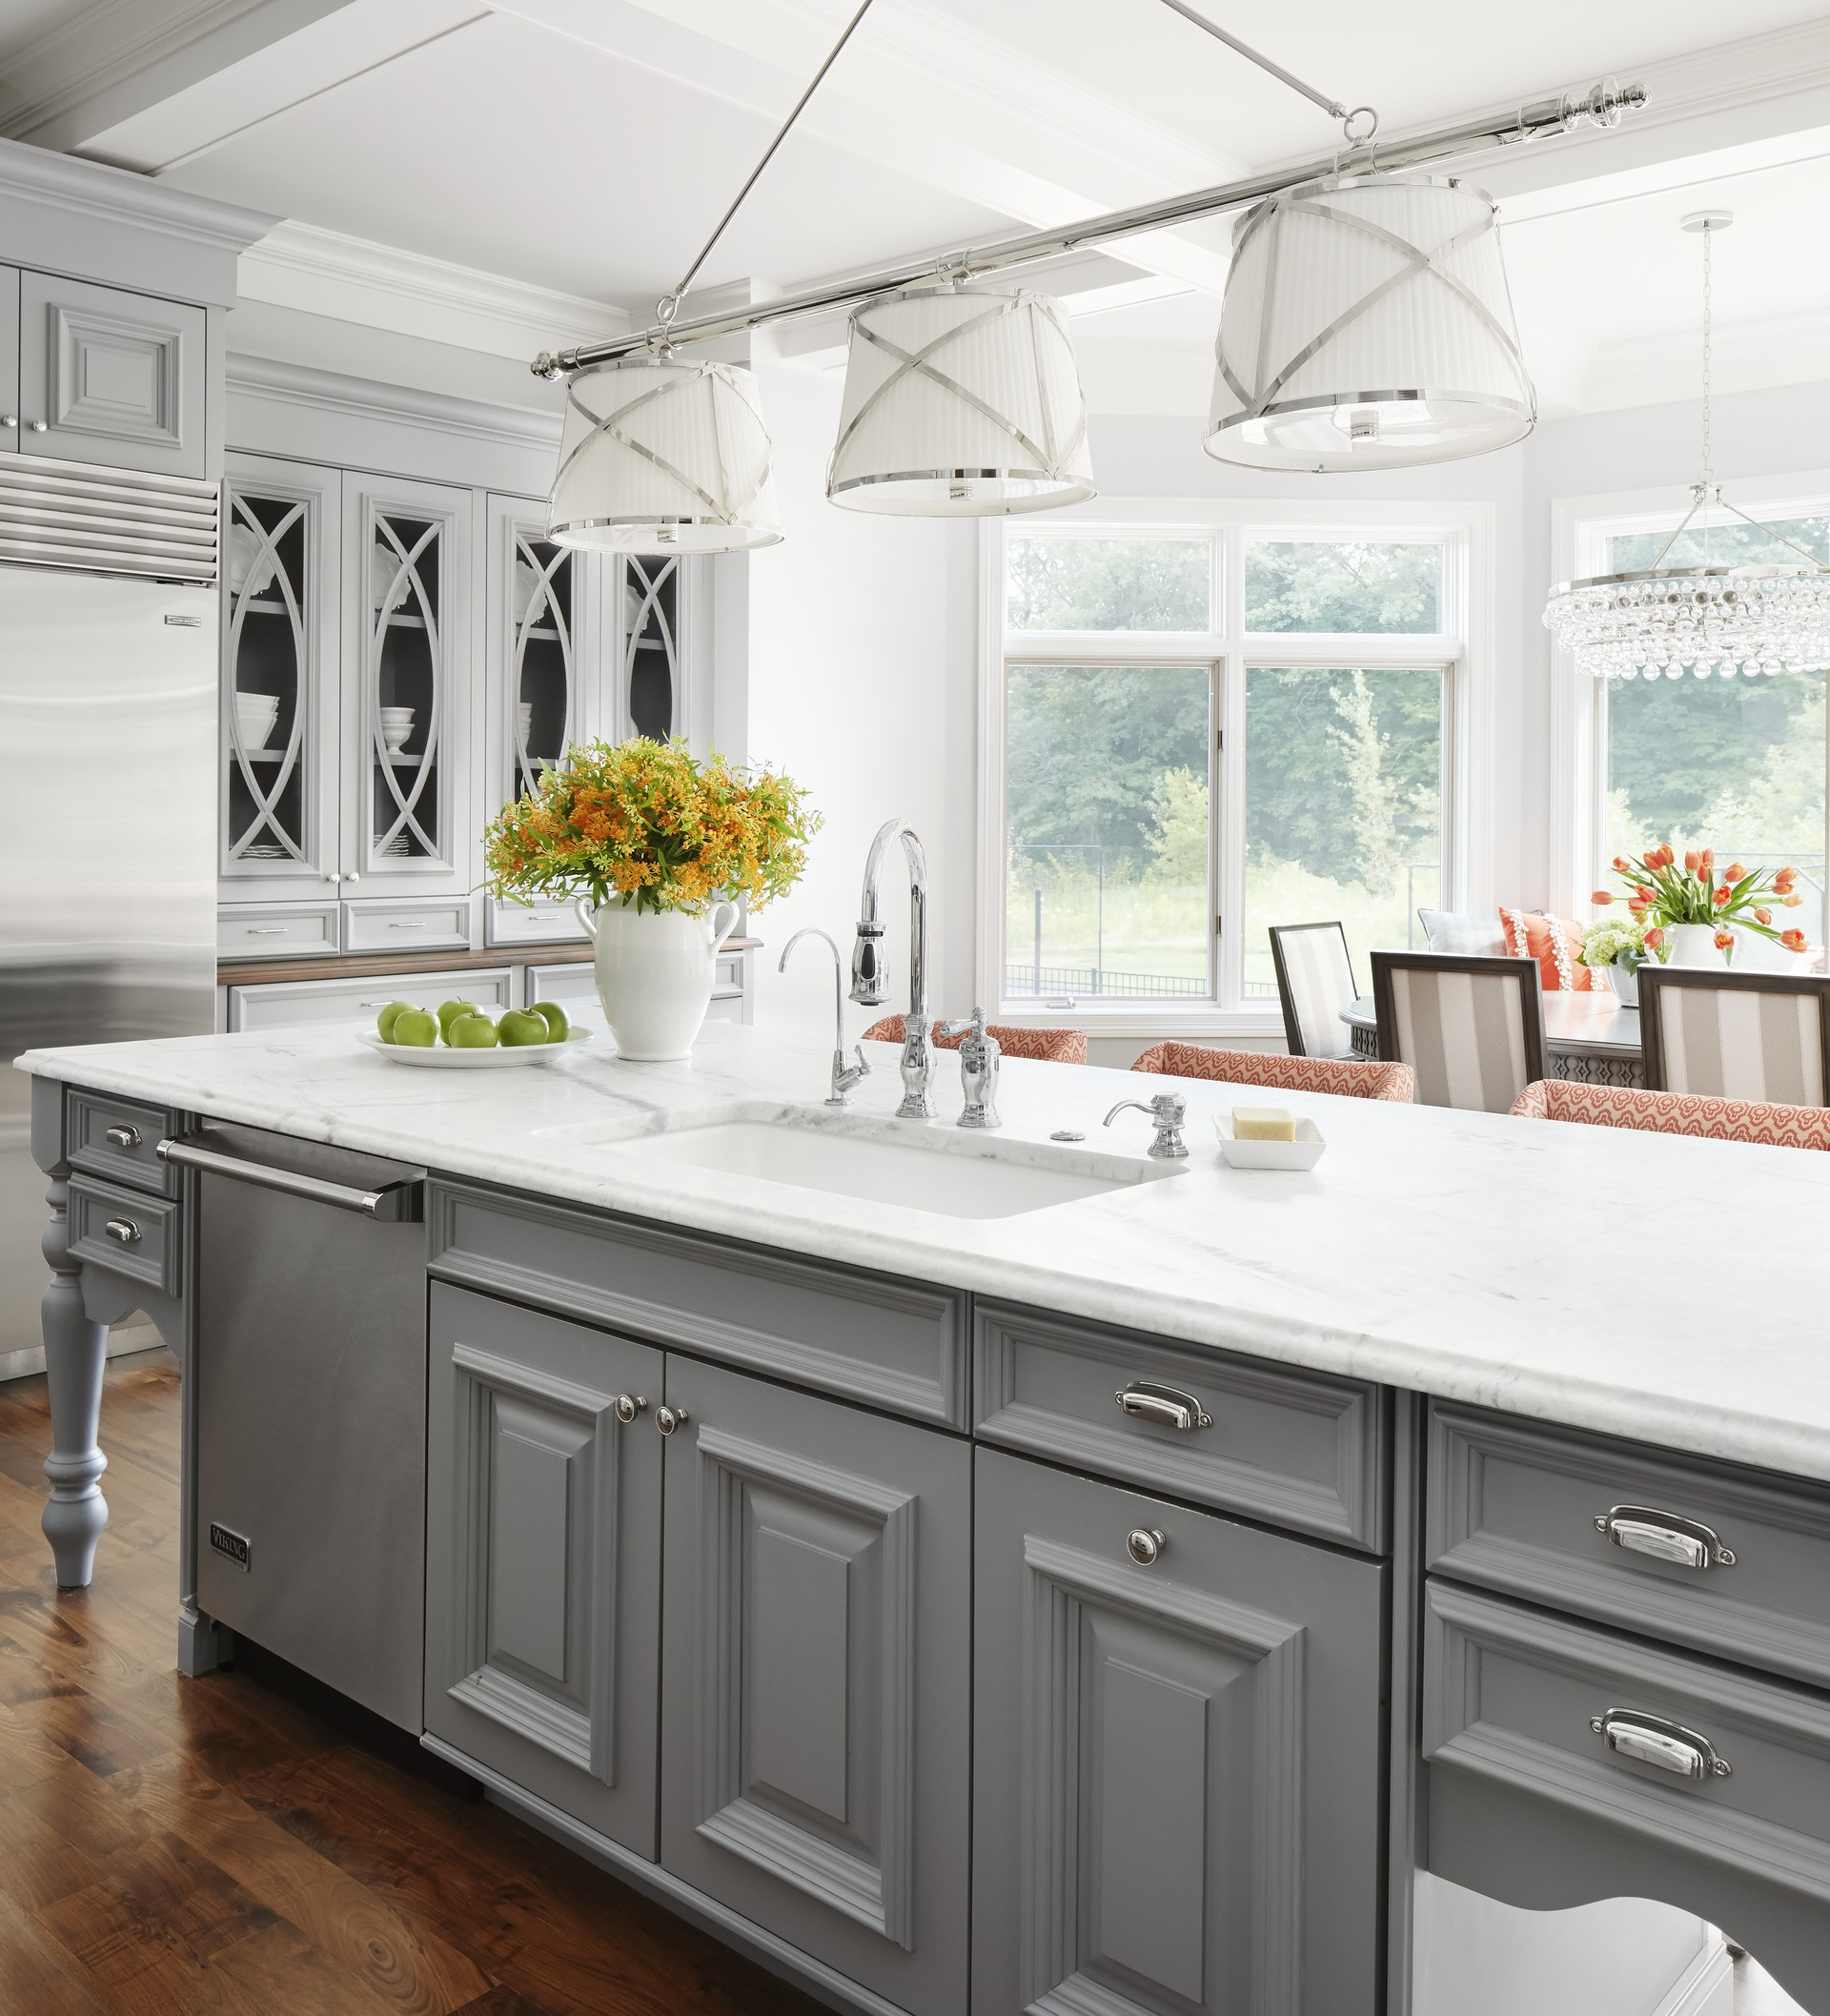 Minnesota Kitchen Cabinets: Midwest Kitchen That's Gorgeous In Gray